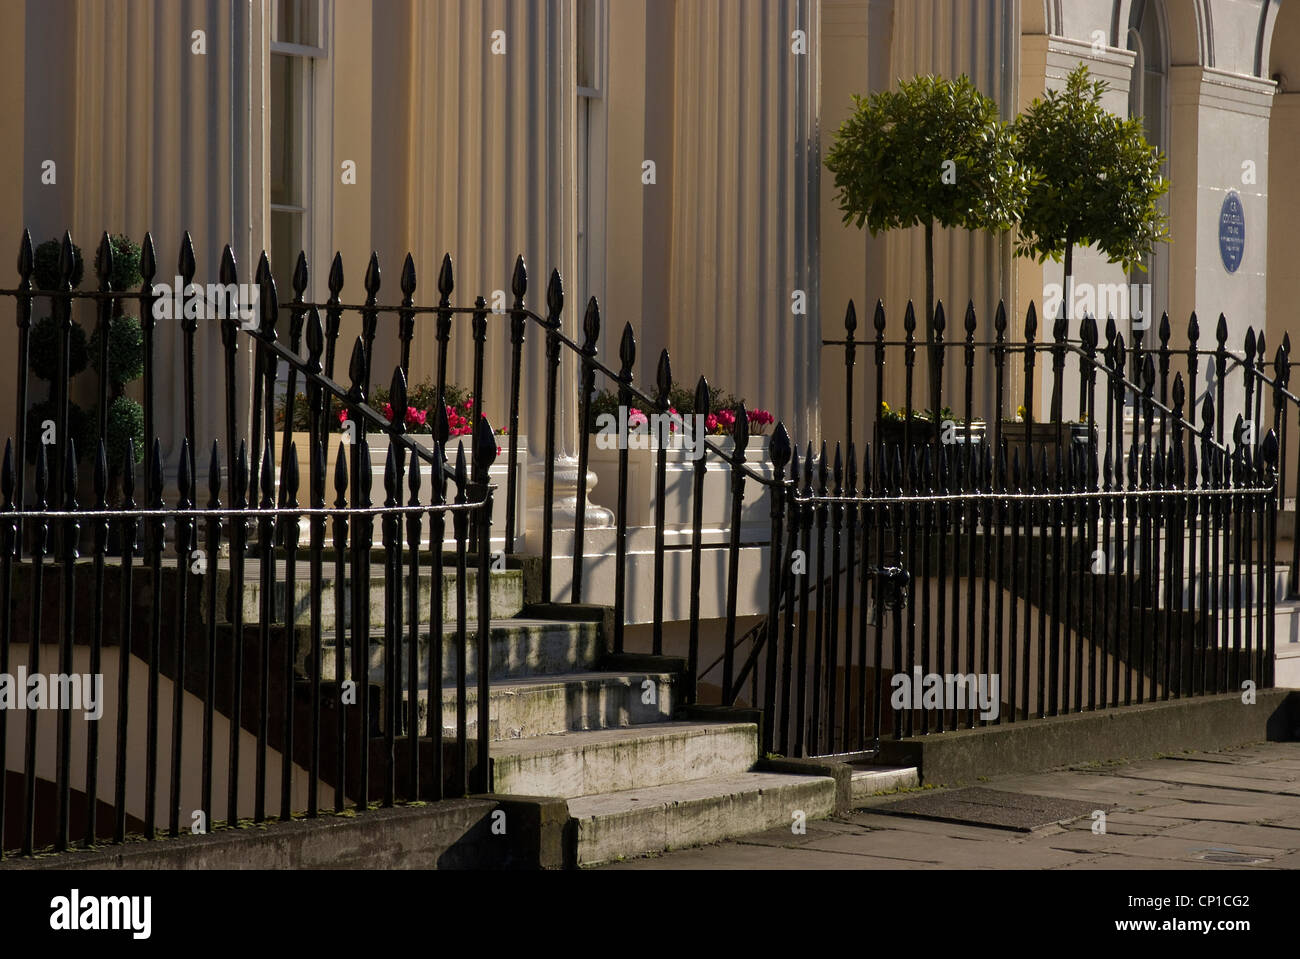 Neo-classical columns and iron gates of one of the houses of Chester Terrace, Regent's Park, Camden, London, - Stock Image